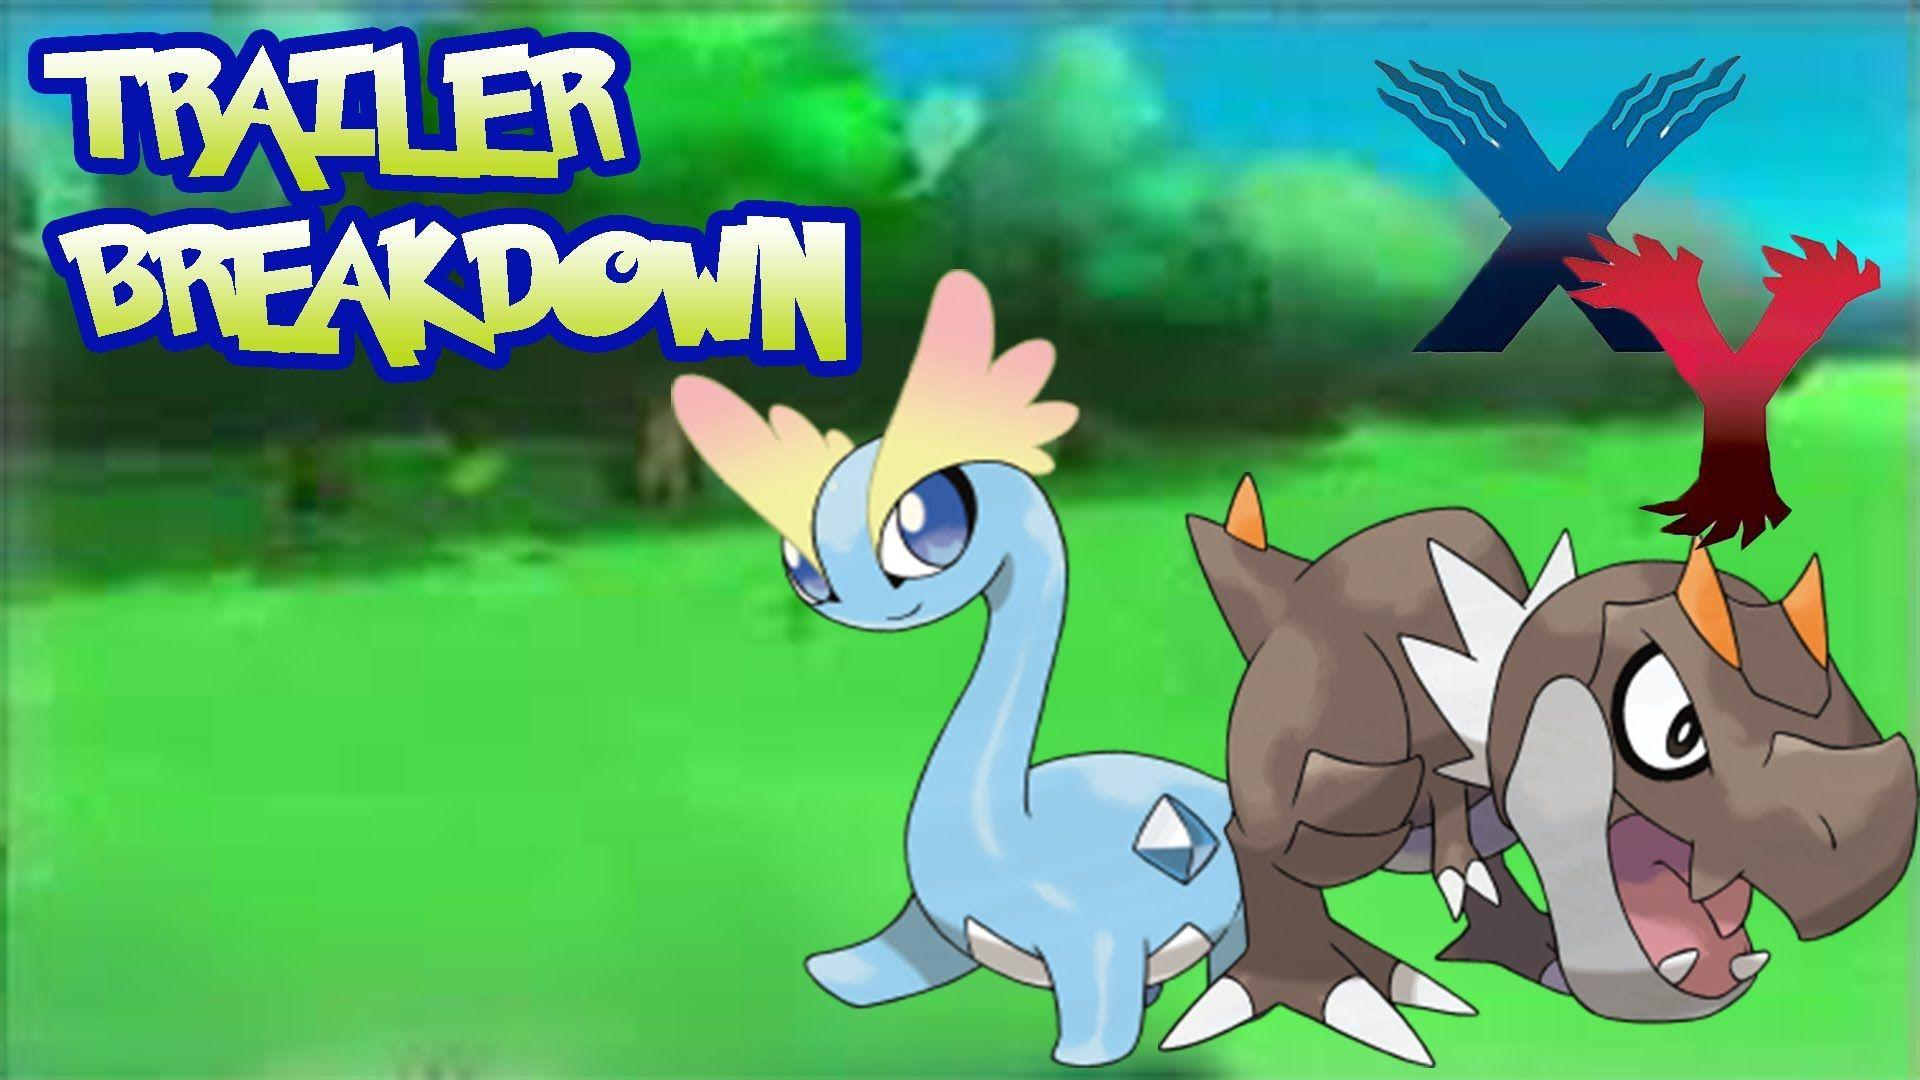 Pokemon X and Y Trailer Breakdown: New Fossil Pokemon